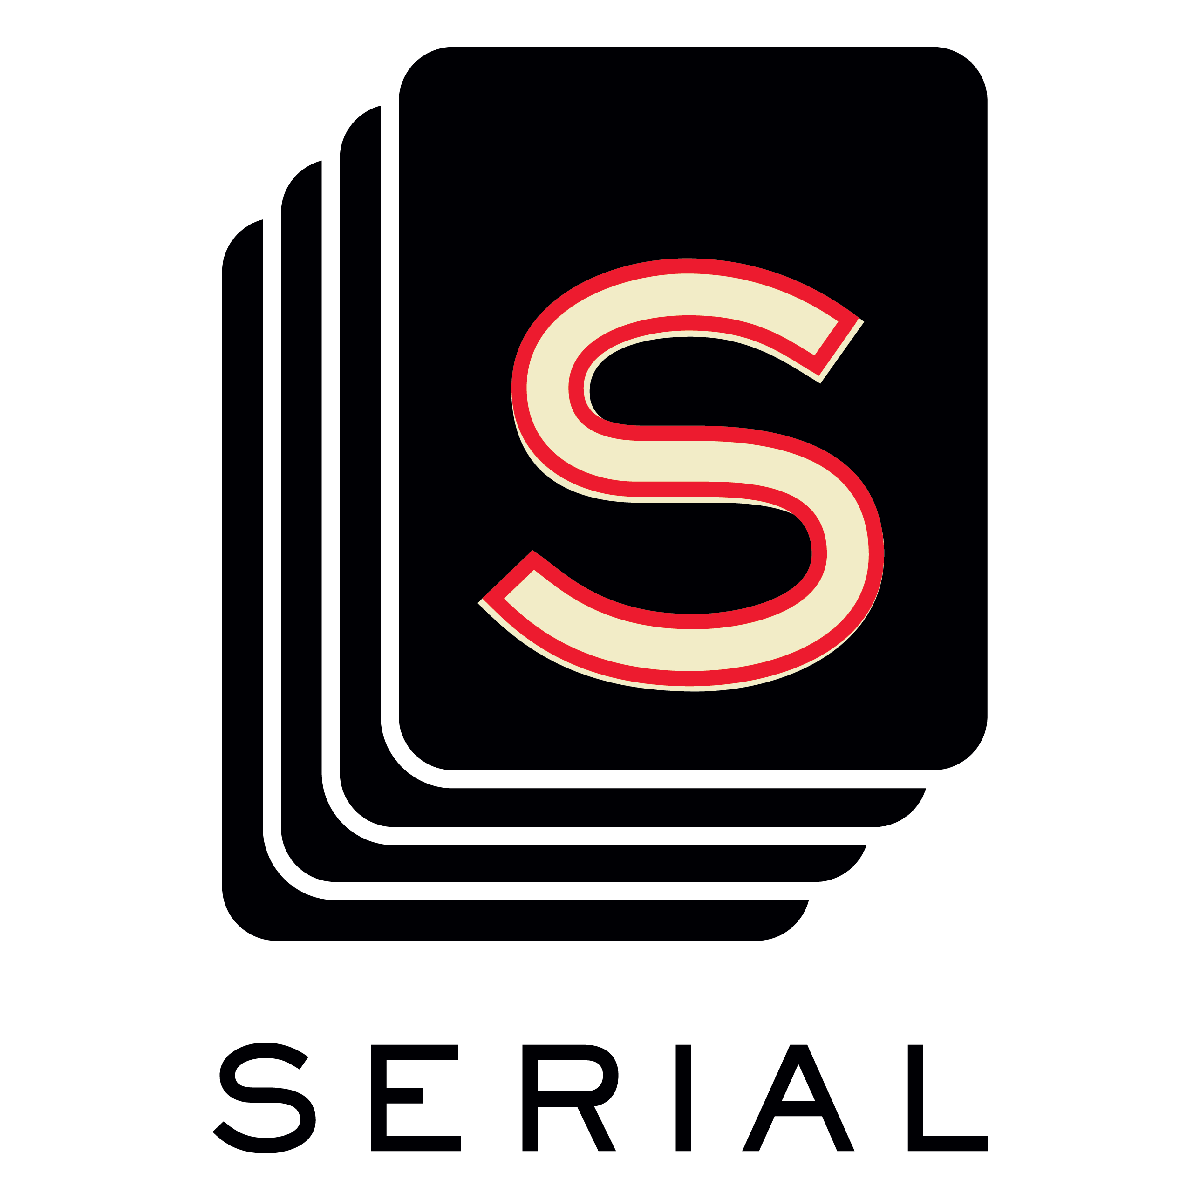 https://i2.wp.com/files.serialpodcast.org/sites/all/modules/custom/serial/img/serial-social-logo.png